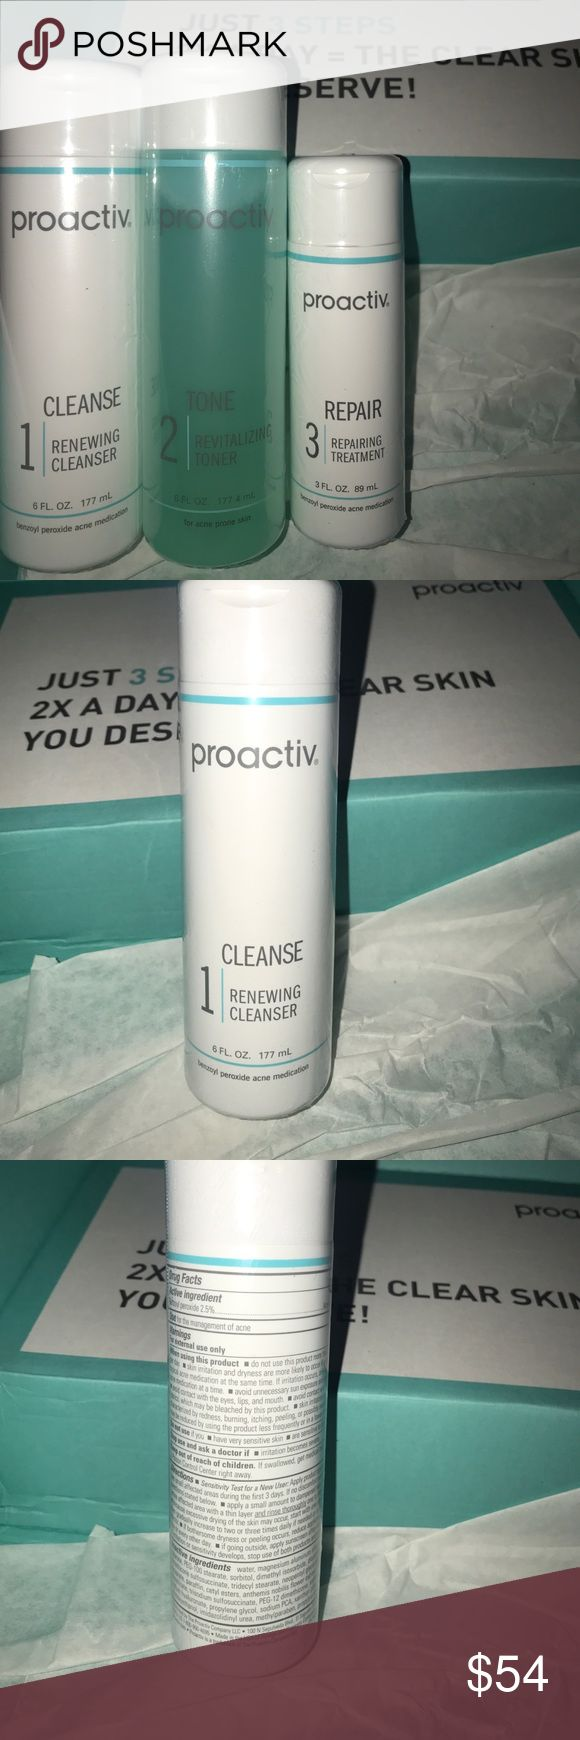 Proactiv kit Proactiv Cleanser (expires 08/18), Toner, and Repairing Cream (expires 08/19). Proactiv Other